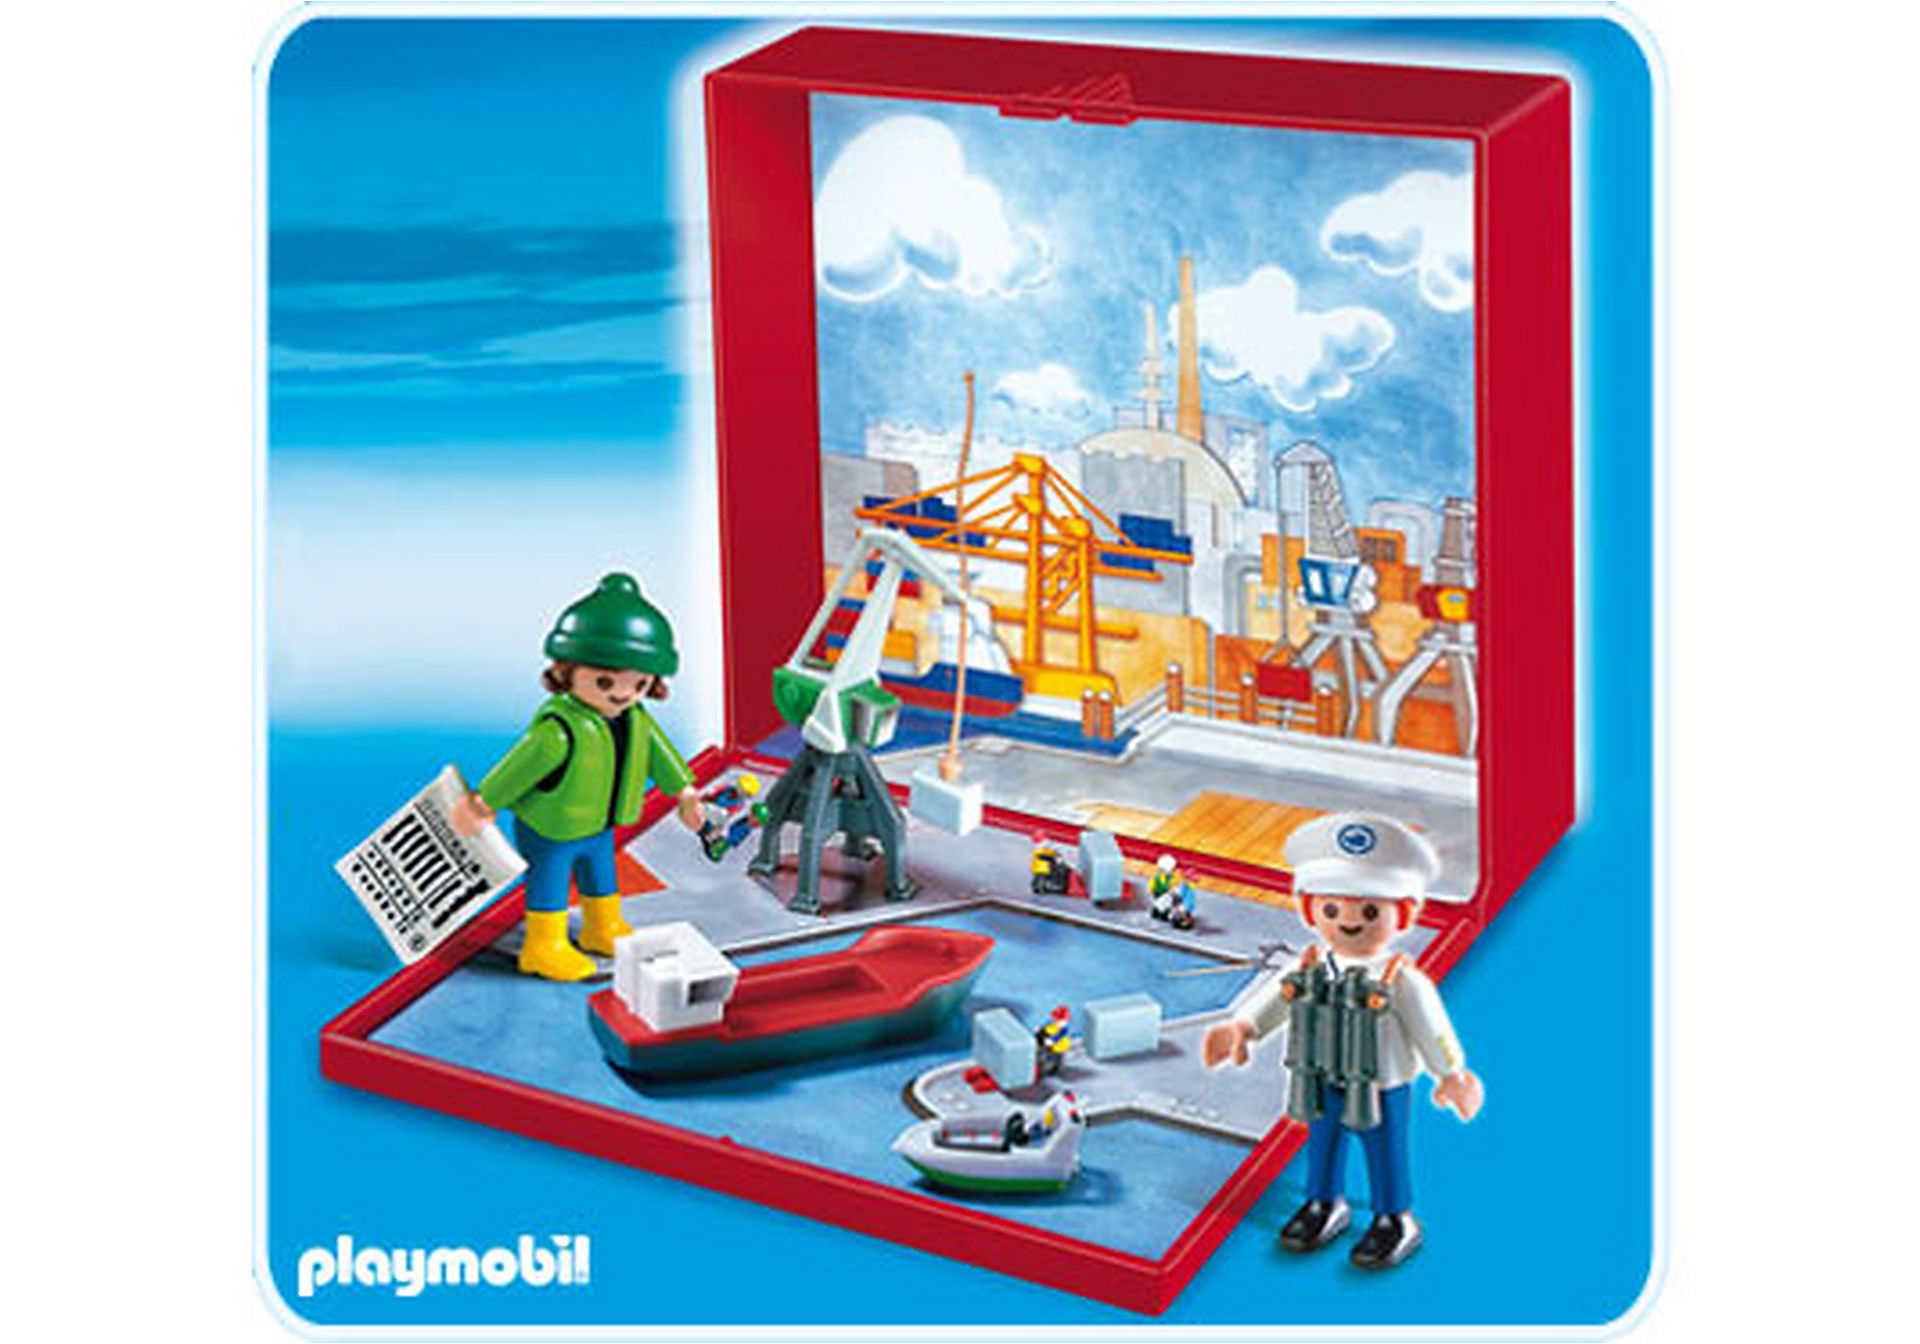 4337-A Micro PLAYMOBIL Port zoom image1